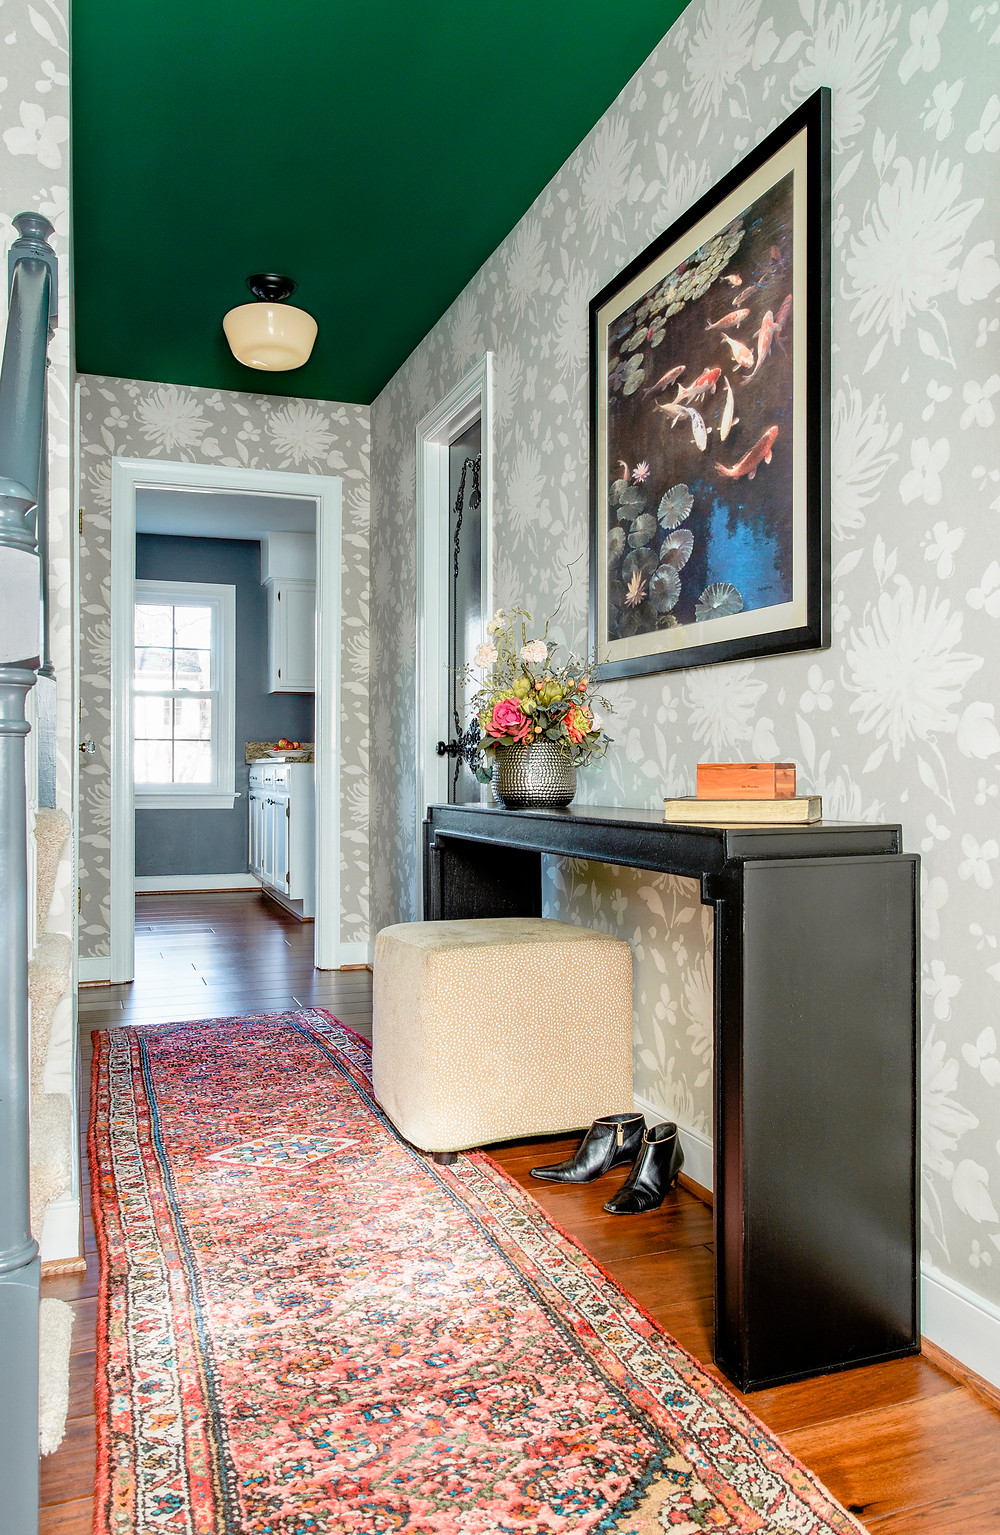 Green-Painted-ceiling-Wallpaper-Entry-Short-Ceilings